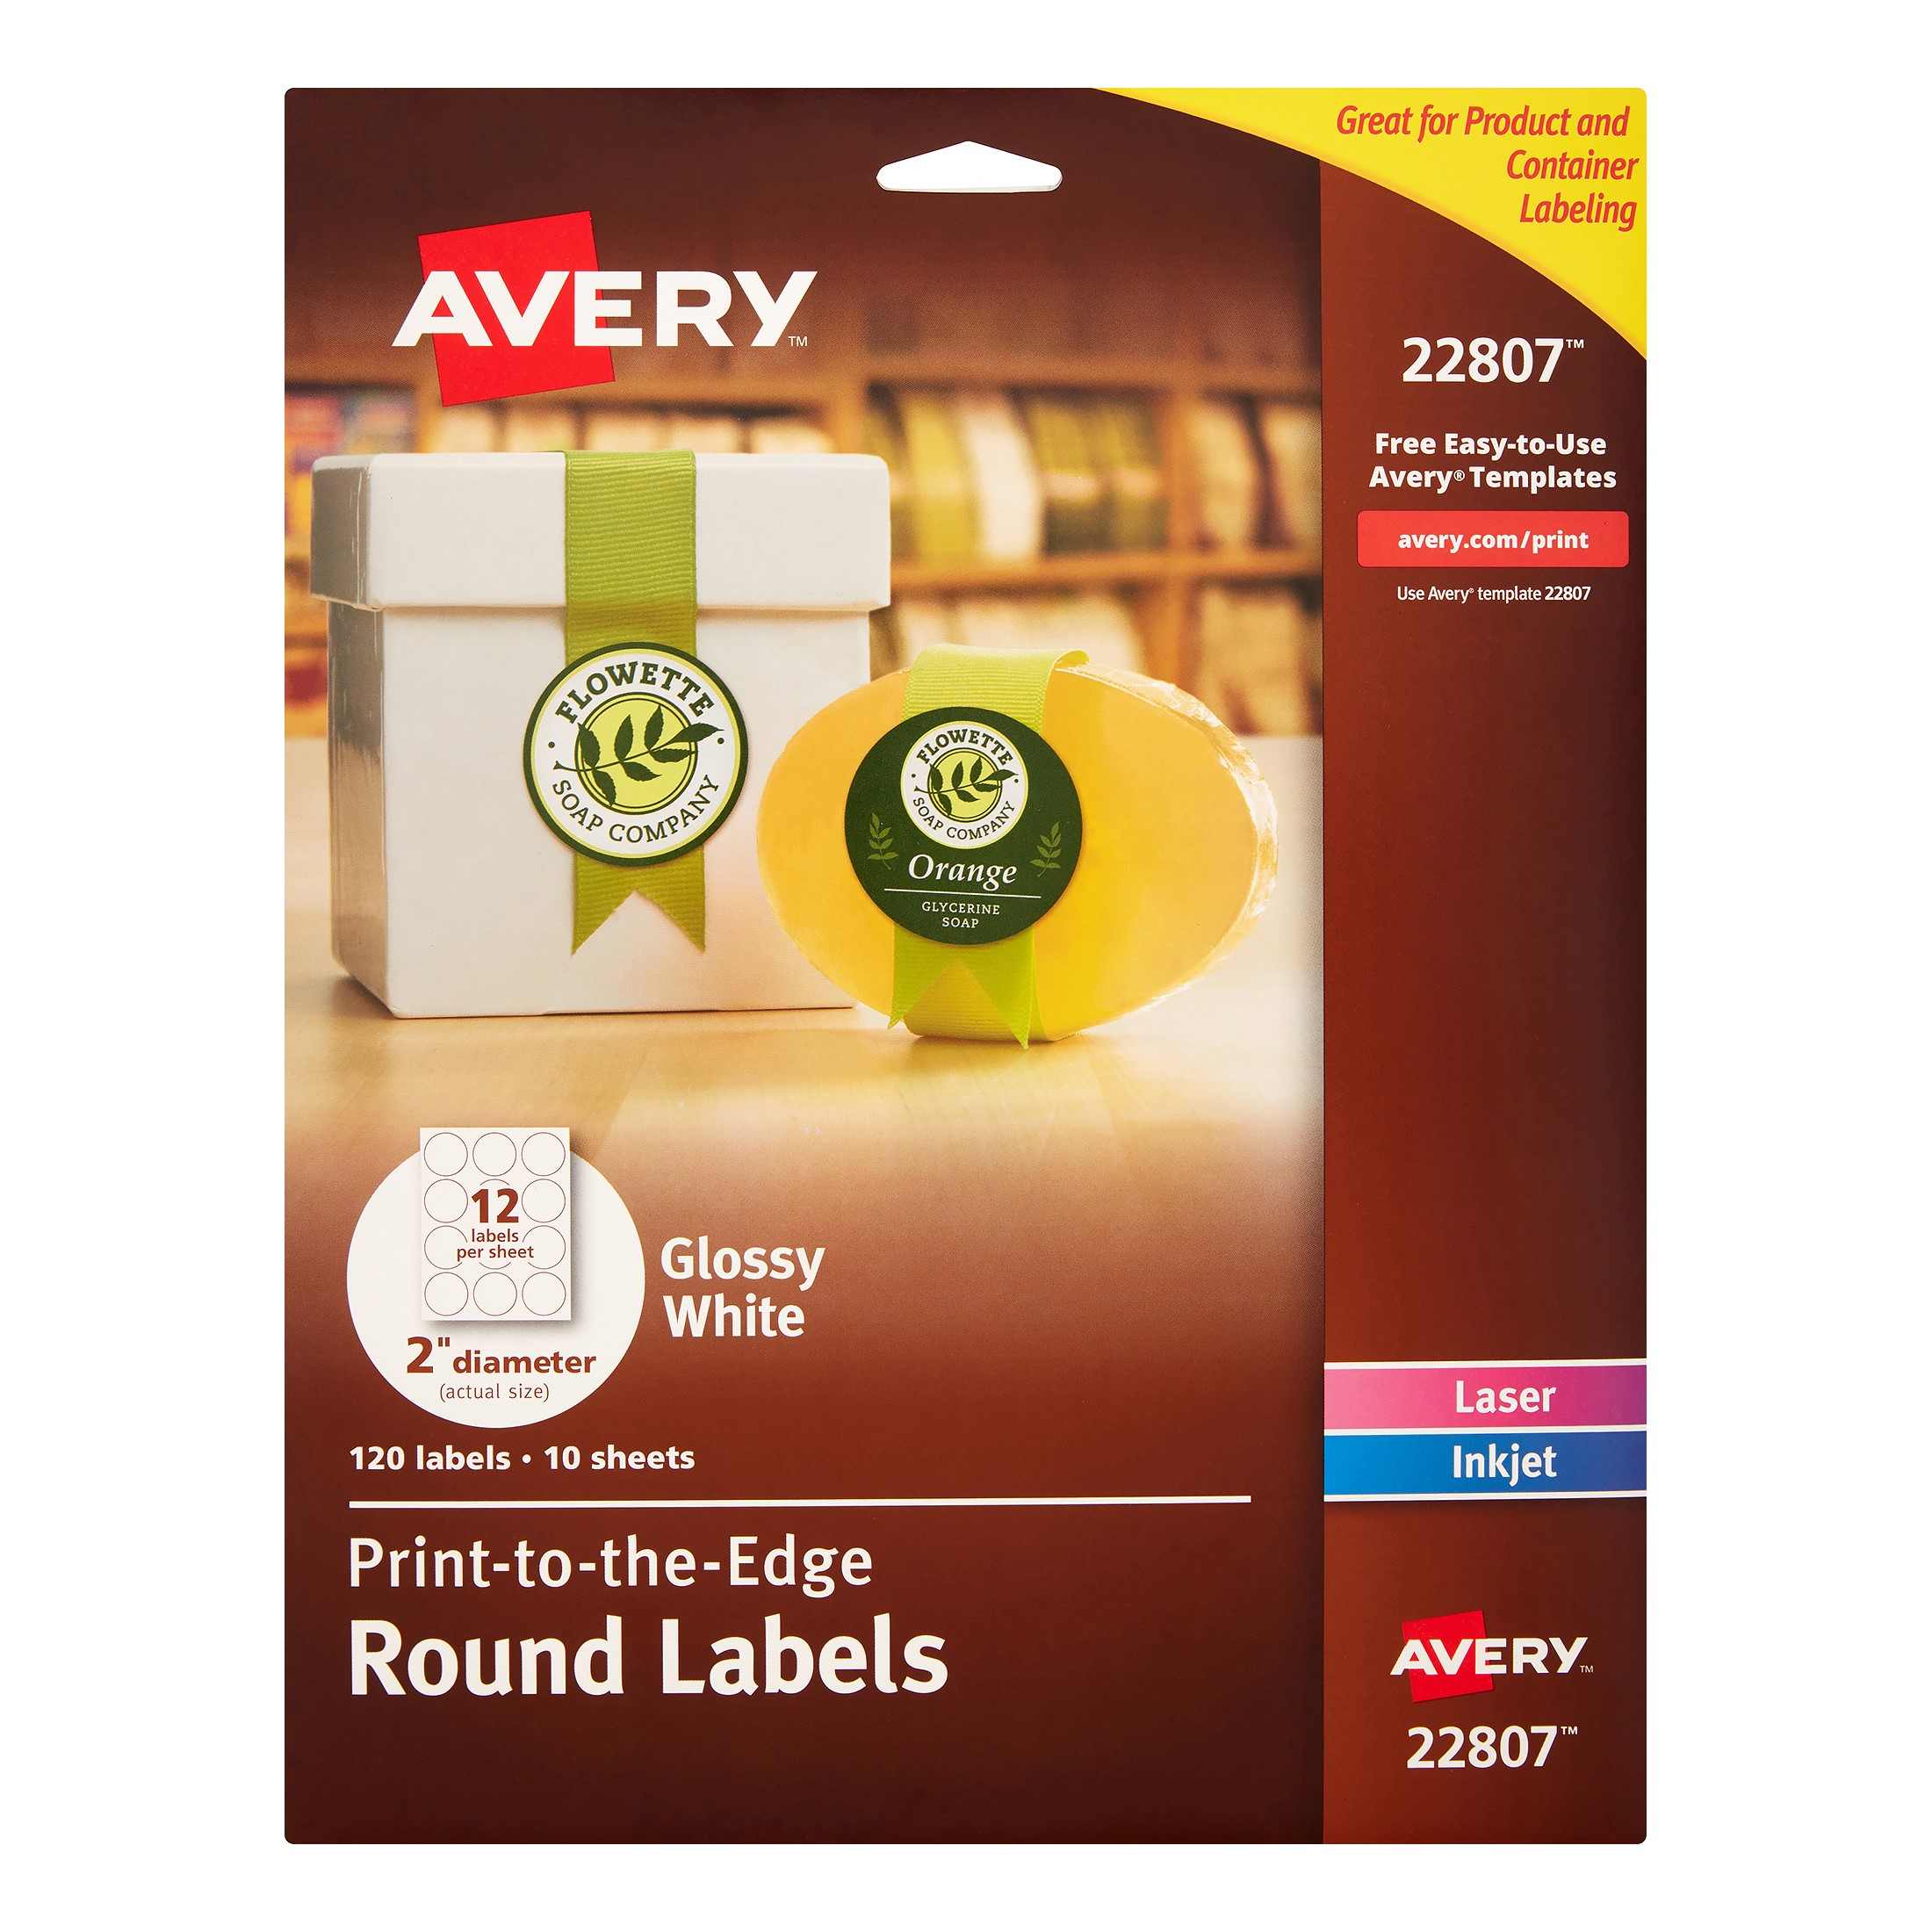 Avery Print-to-the-Edge Round Labels, 2 in. Diameter, White, 120 Count (22807)